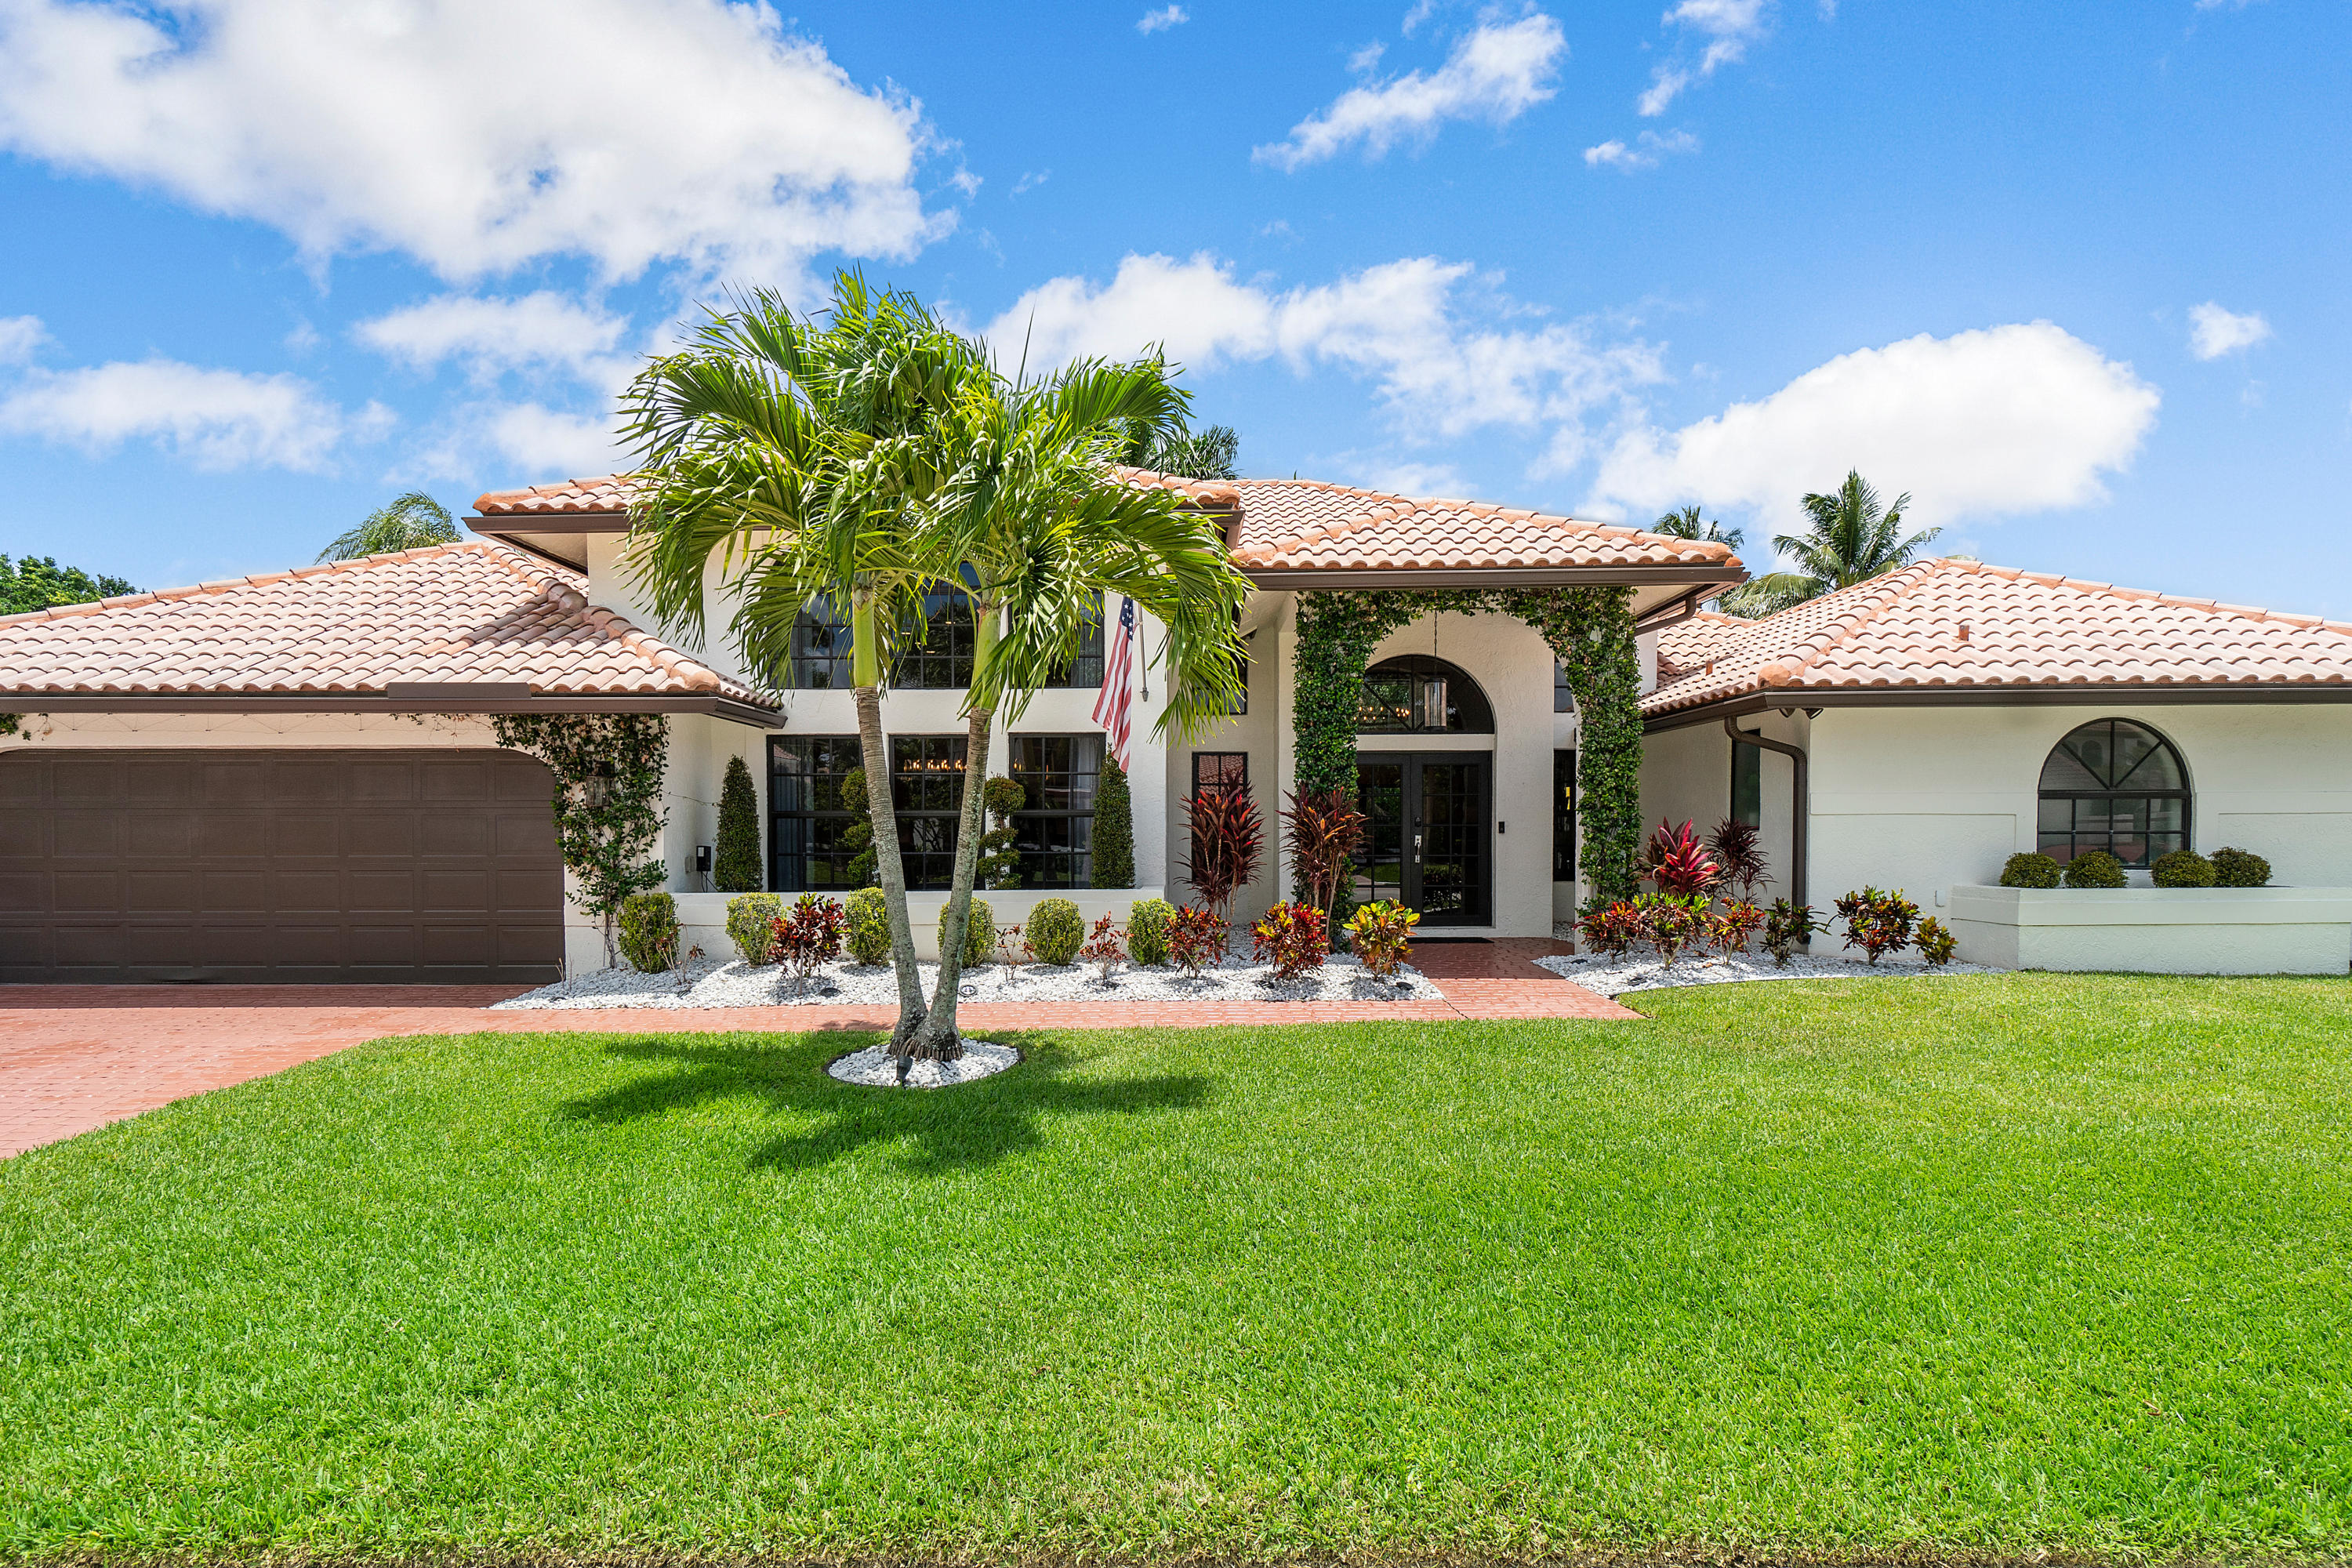 2930 NW 27th Avenue  For Sale 10723505, FL